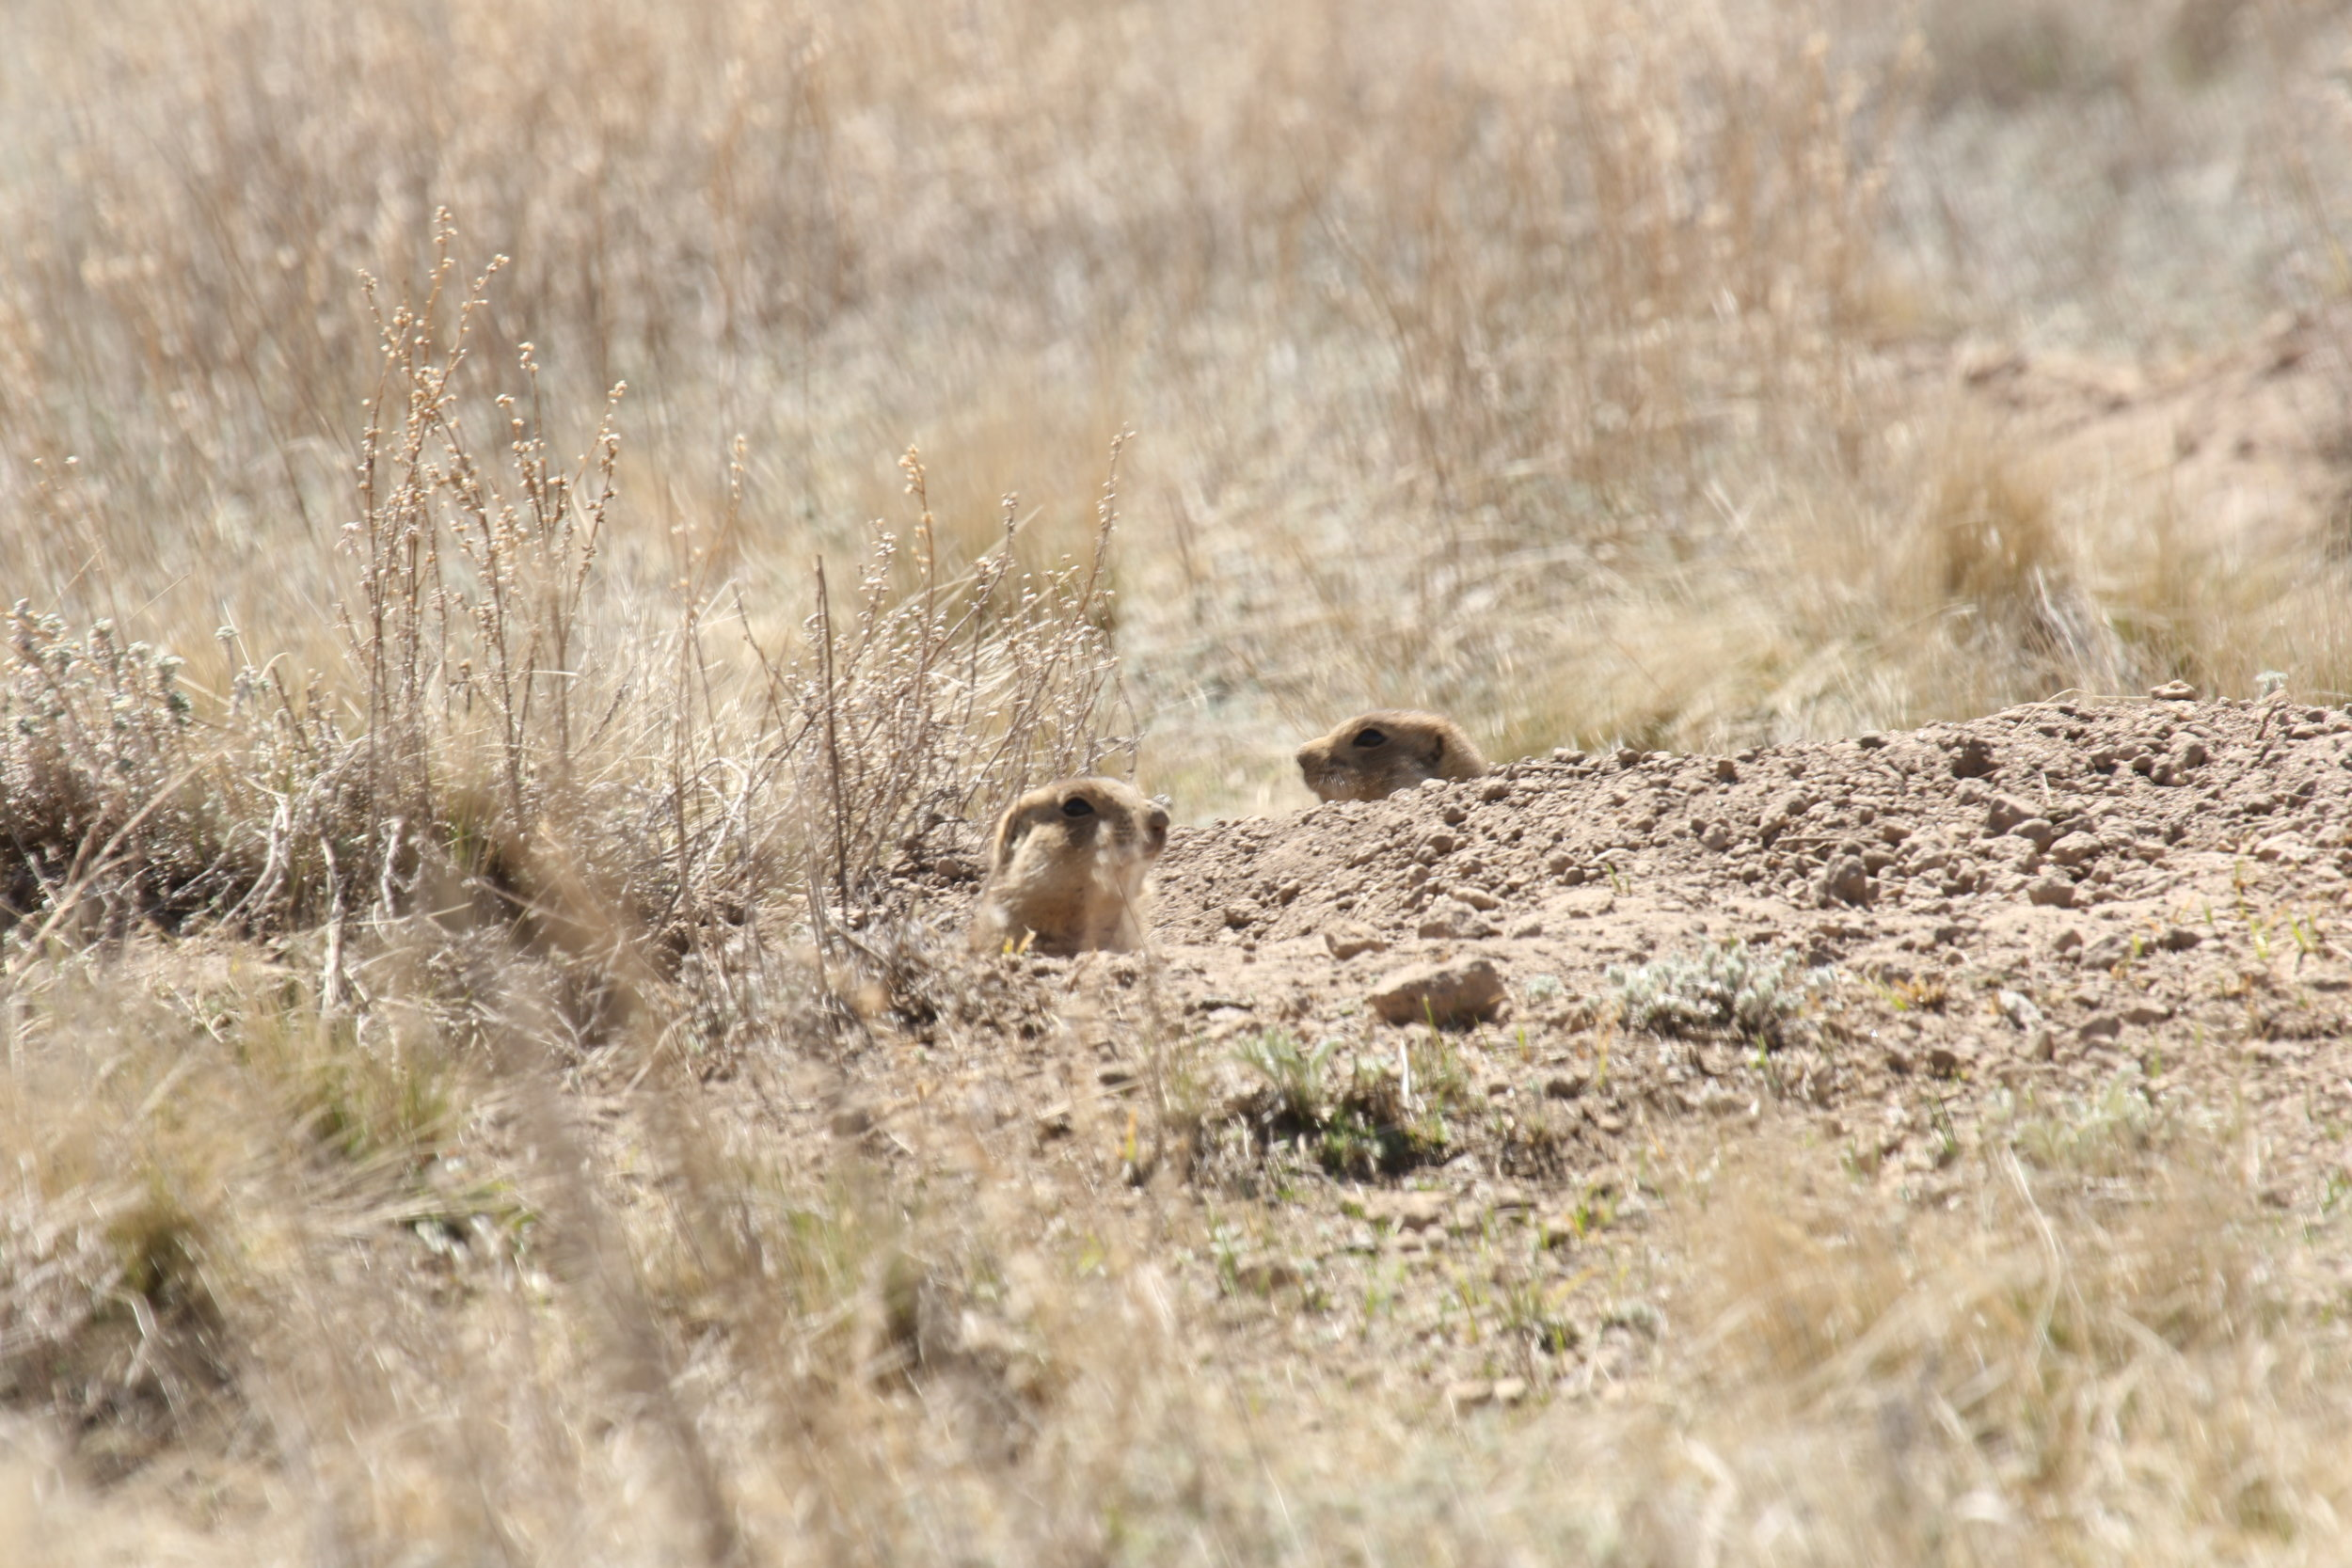 Upon perceiving a threat, a prairie dog will often run to the mouth of its burrow, keeping an eye on its surroundings from the safest position.  ©MRR 2017